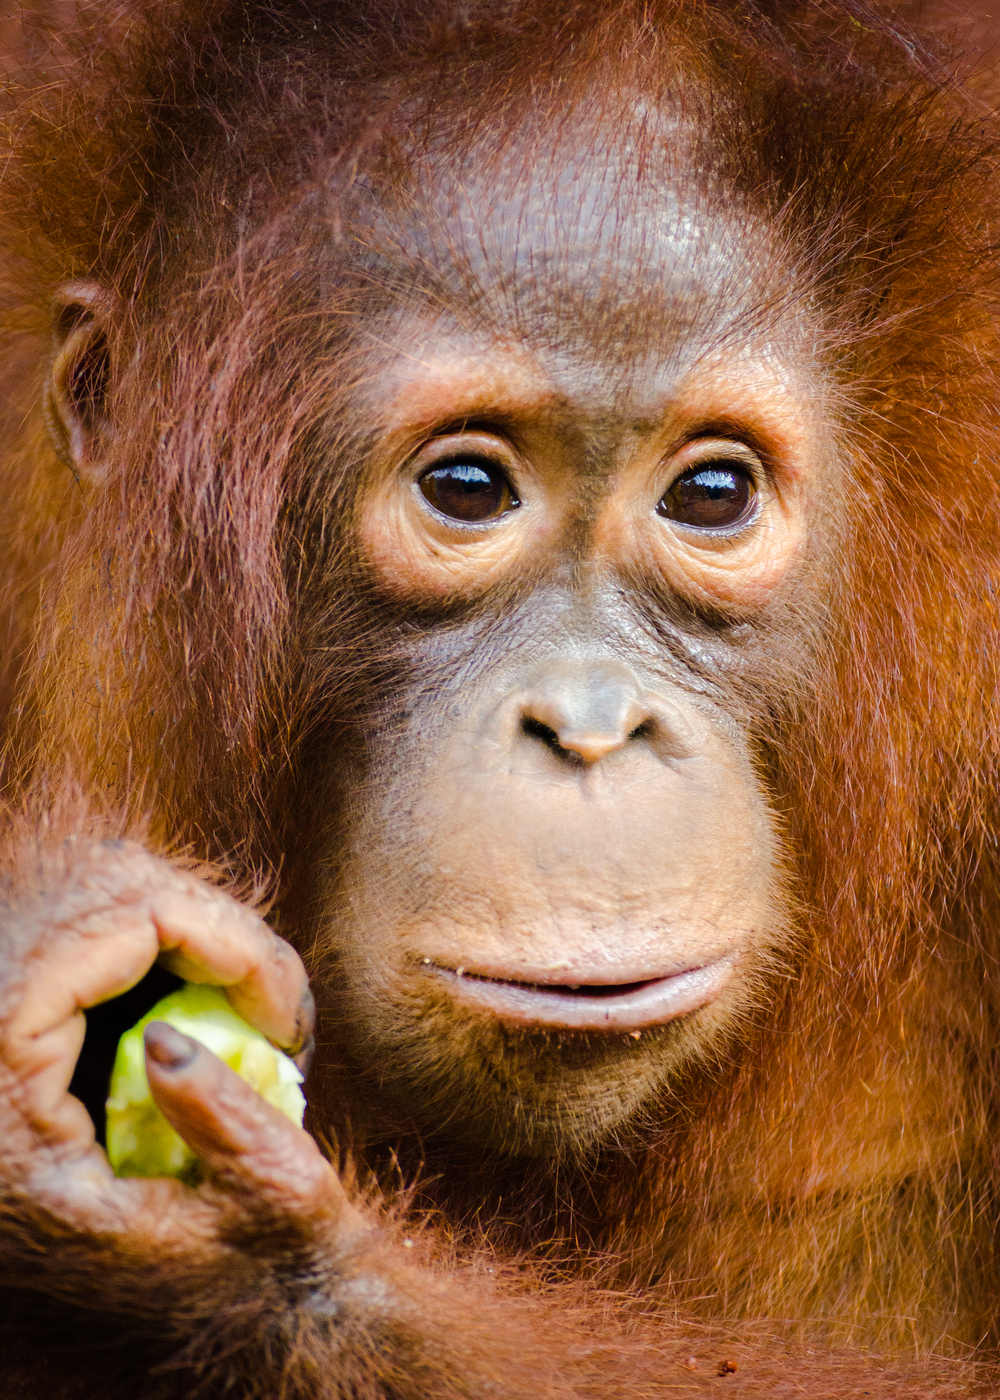 orang-utan-close-up.jpg